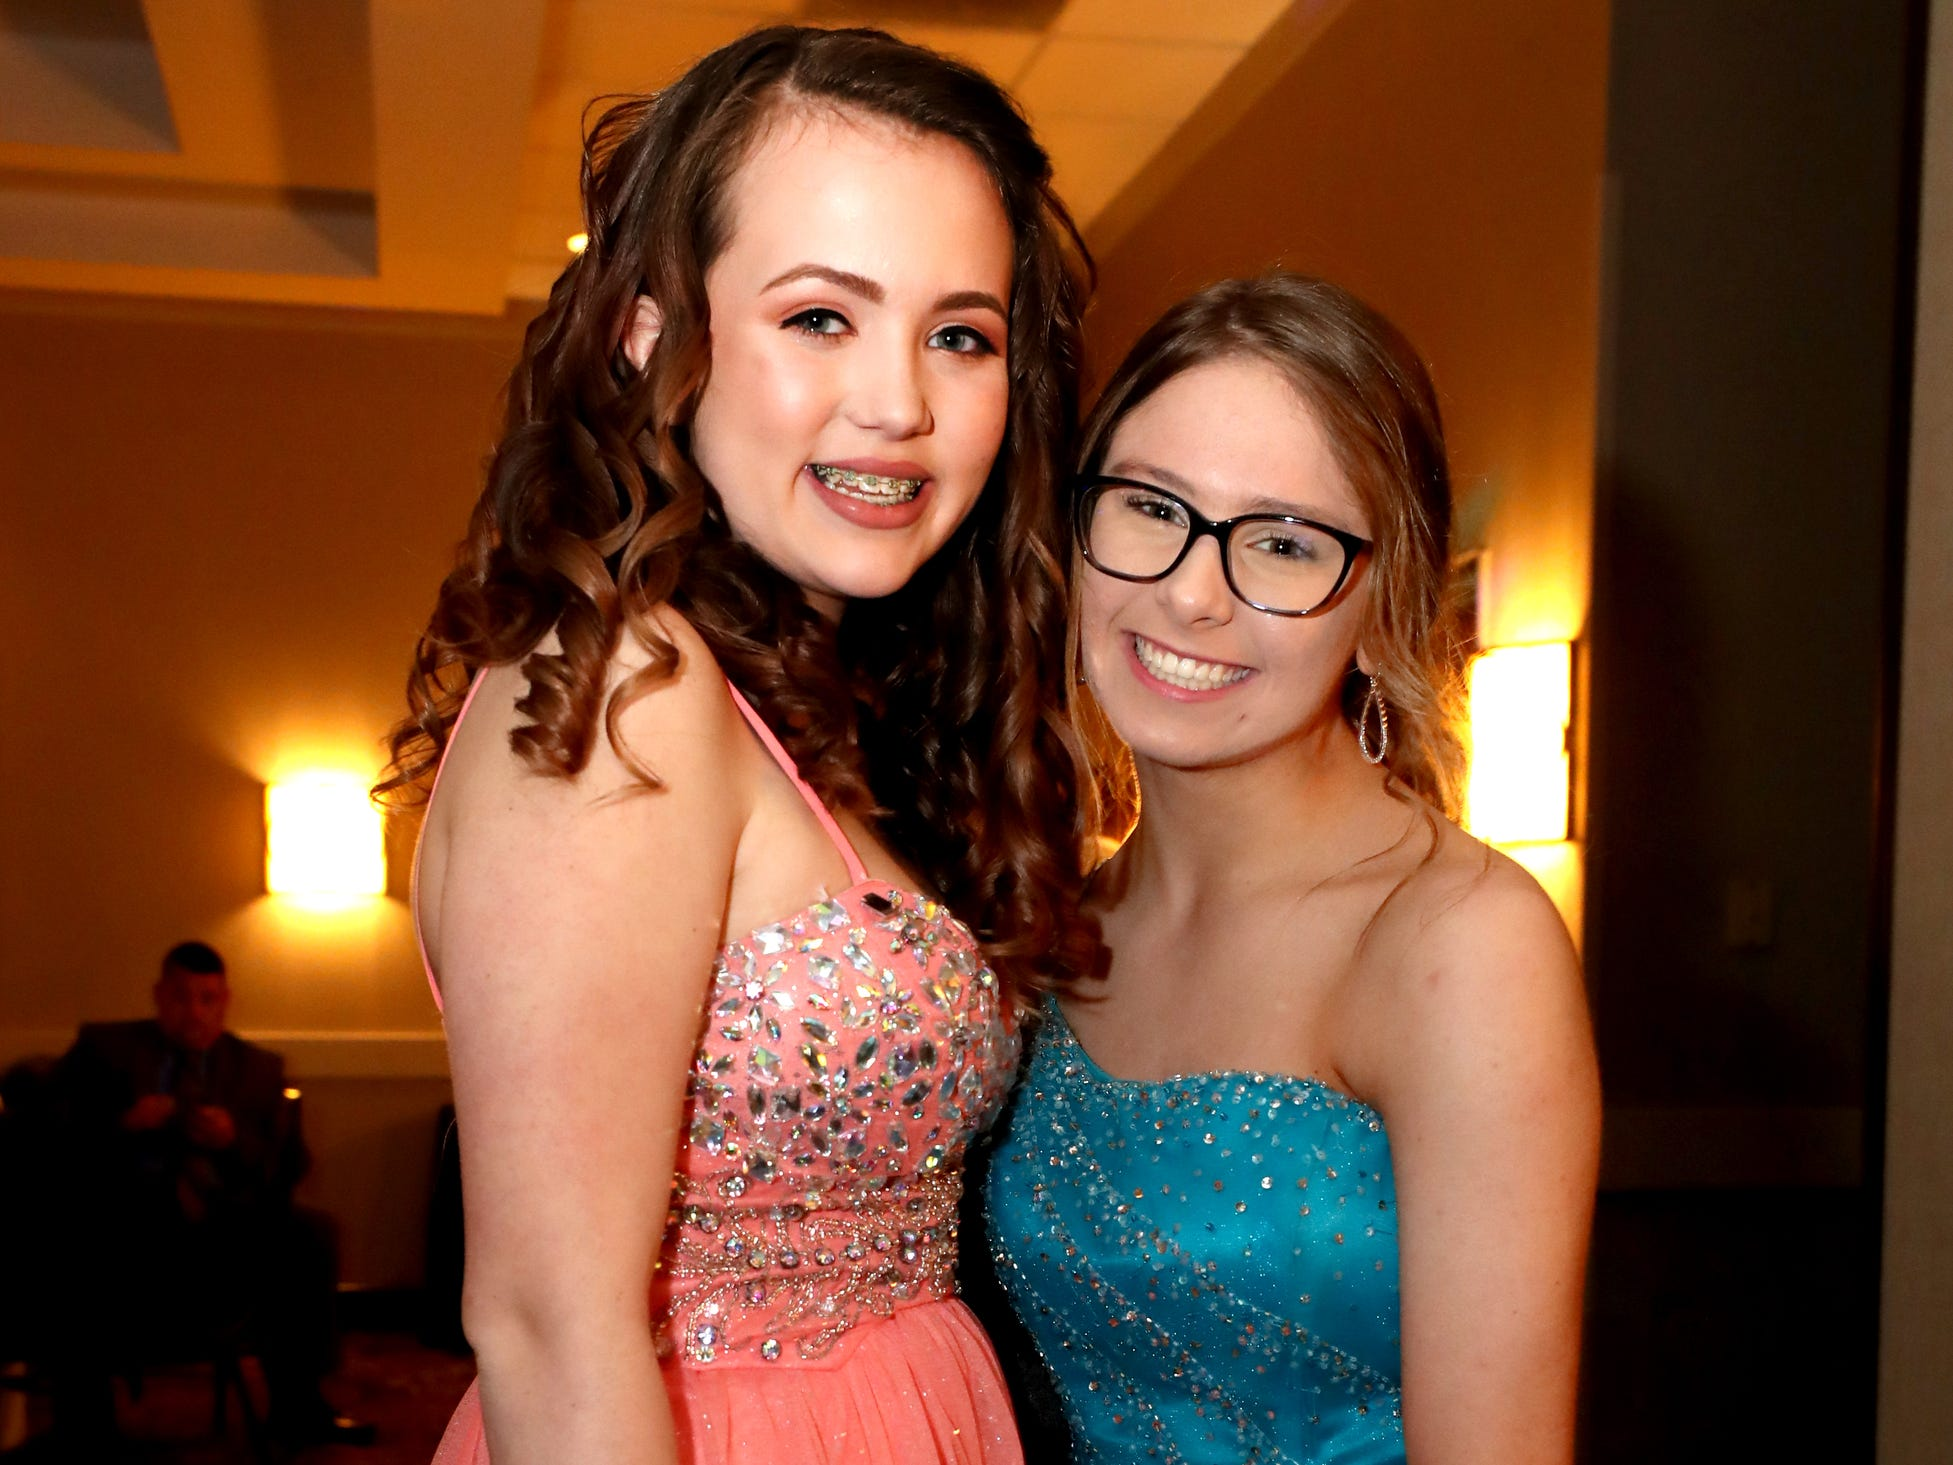 Abby Carr, left and Erin Carlson, right at Holloway's prom at the DoubleTree on Thursday April 18, 2019.